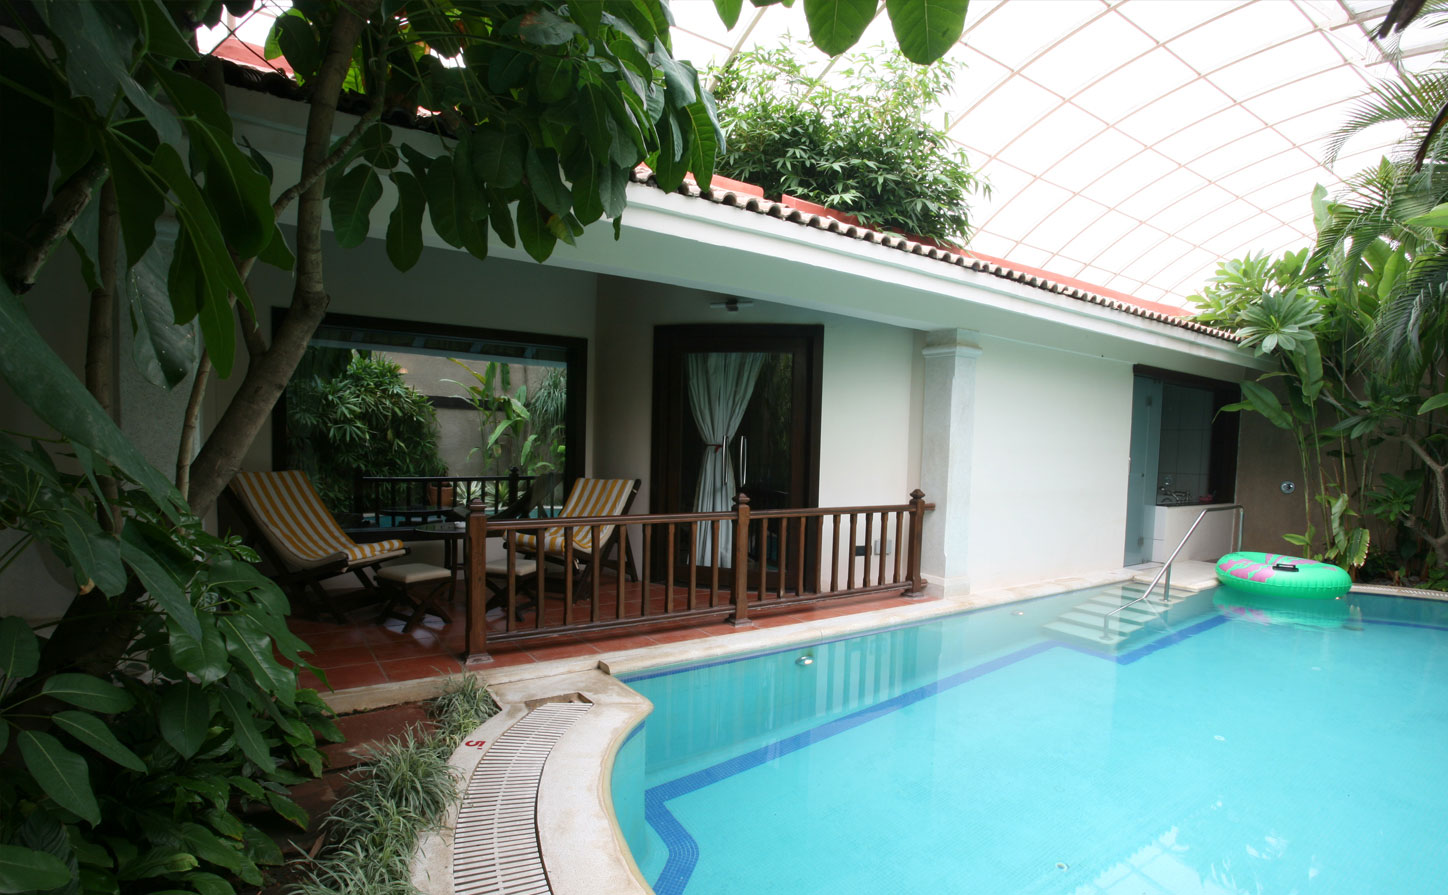 Ethnic Suite Hotels Holidays Luxury Suites Vacation